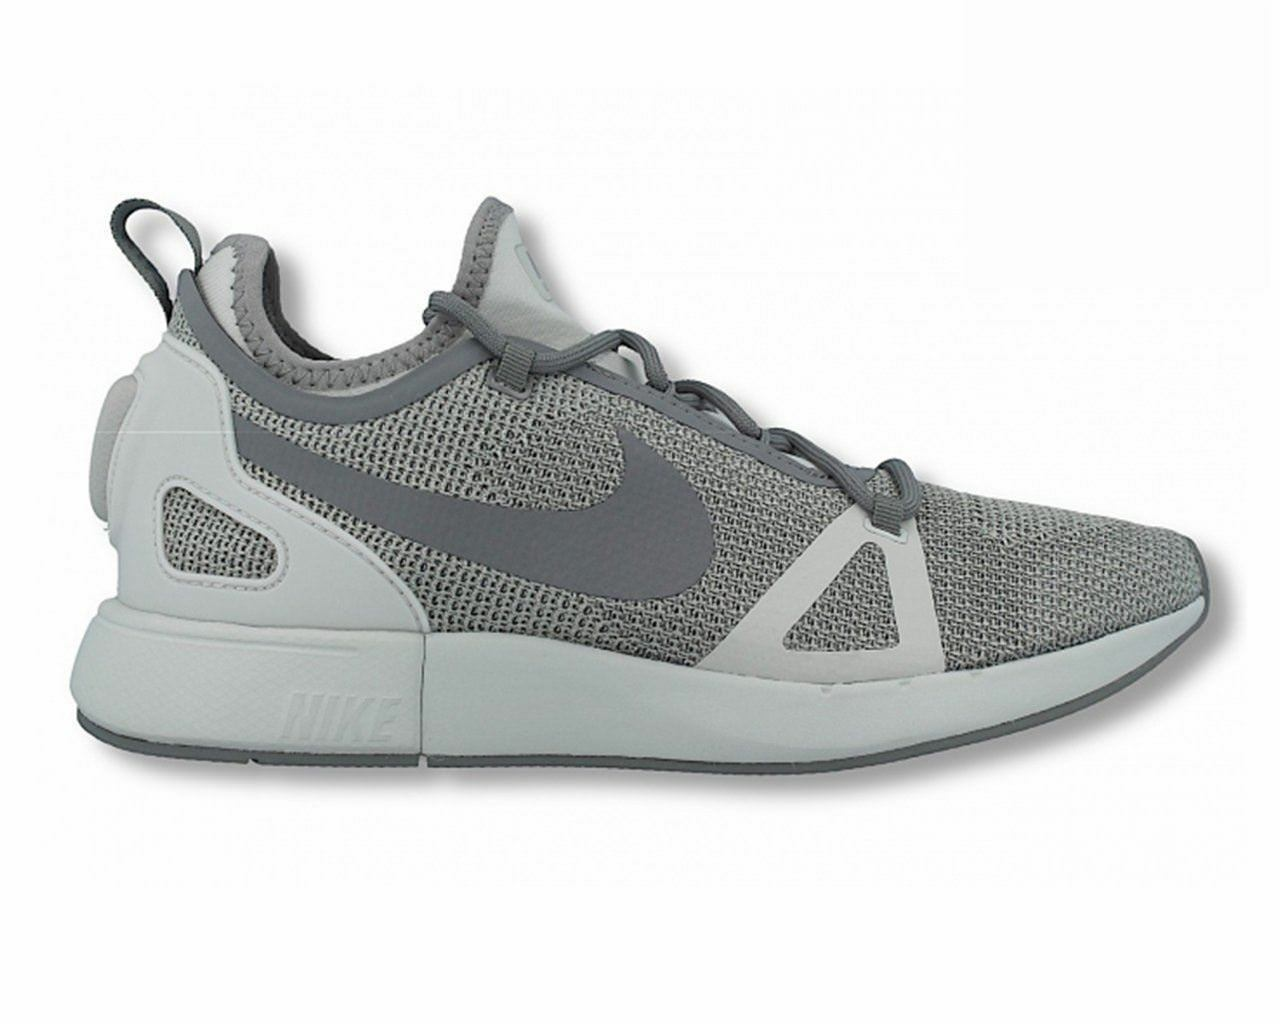 Sale Mens Nike DUEL RACER 918228 004 Gym Shoes  Pale Grey Trainers RRP £95